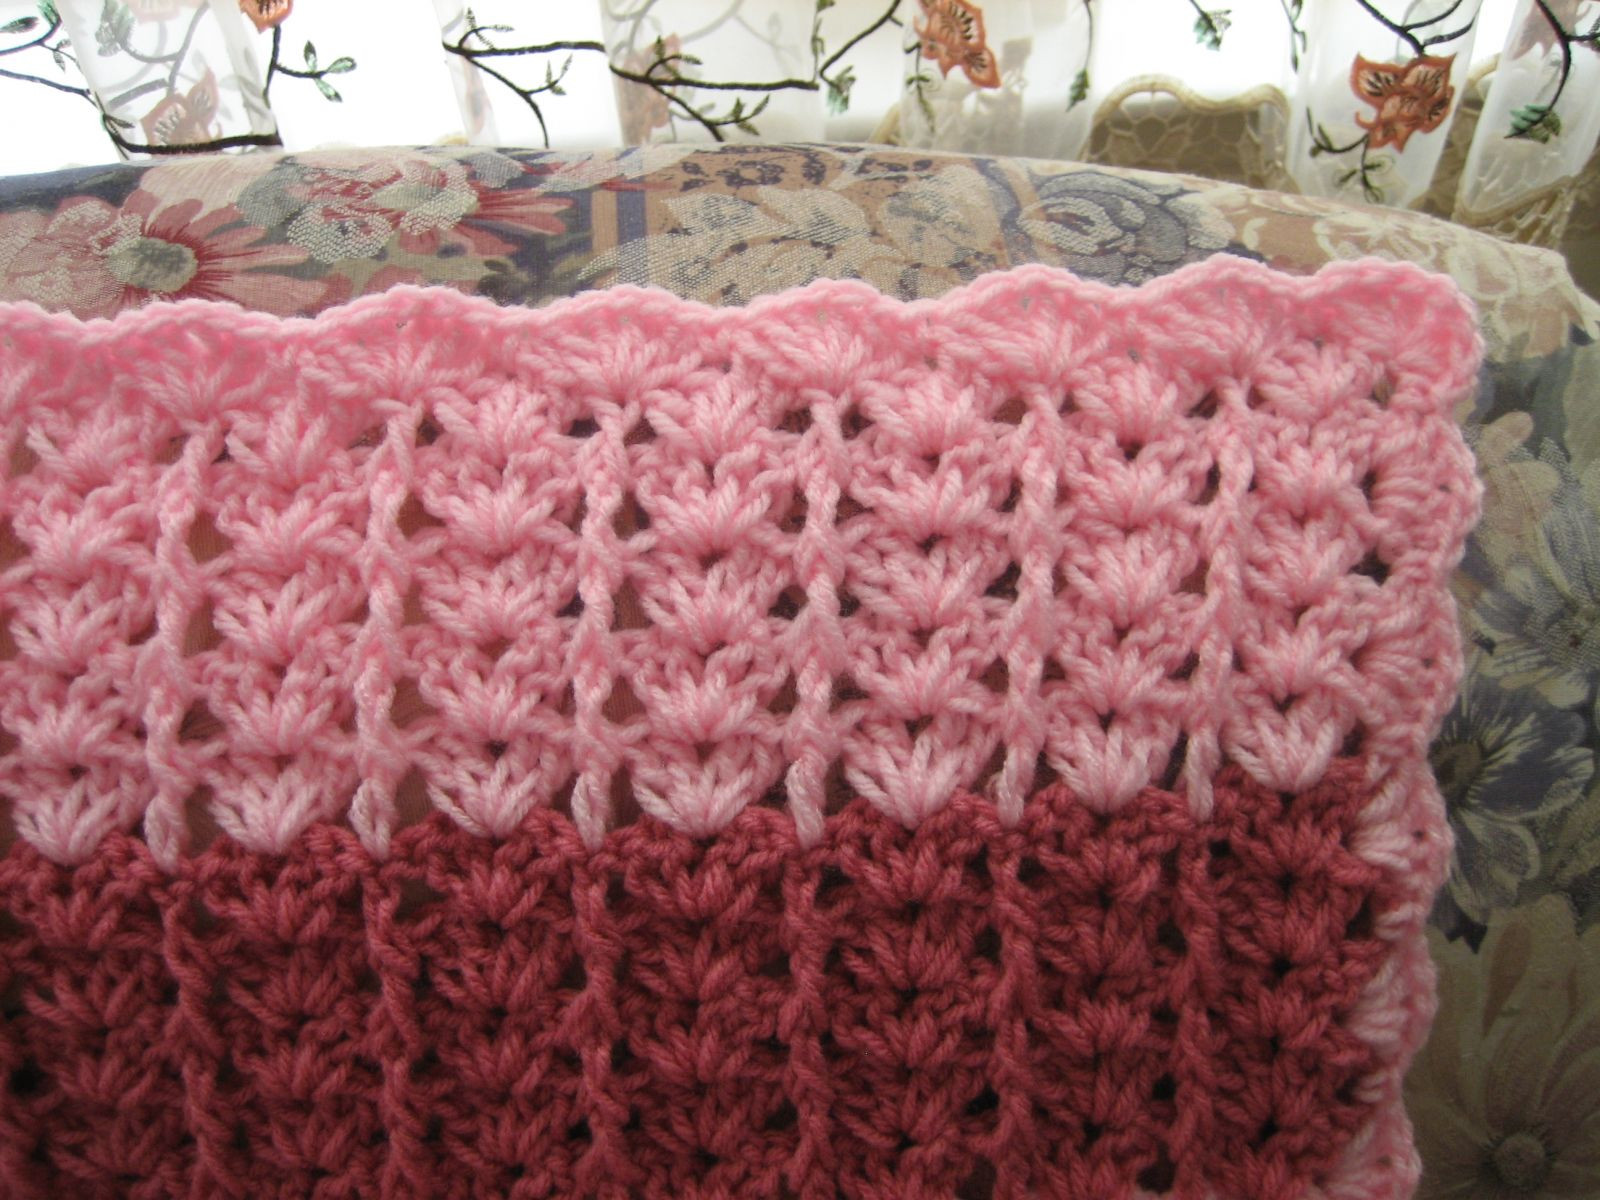 Best Of Lacy Shades Of Pink Shells Afghan Shell Stitch Baby Blanket Of Brilliant 49 Images Shell Stitch Baby Blanket